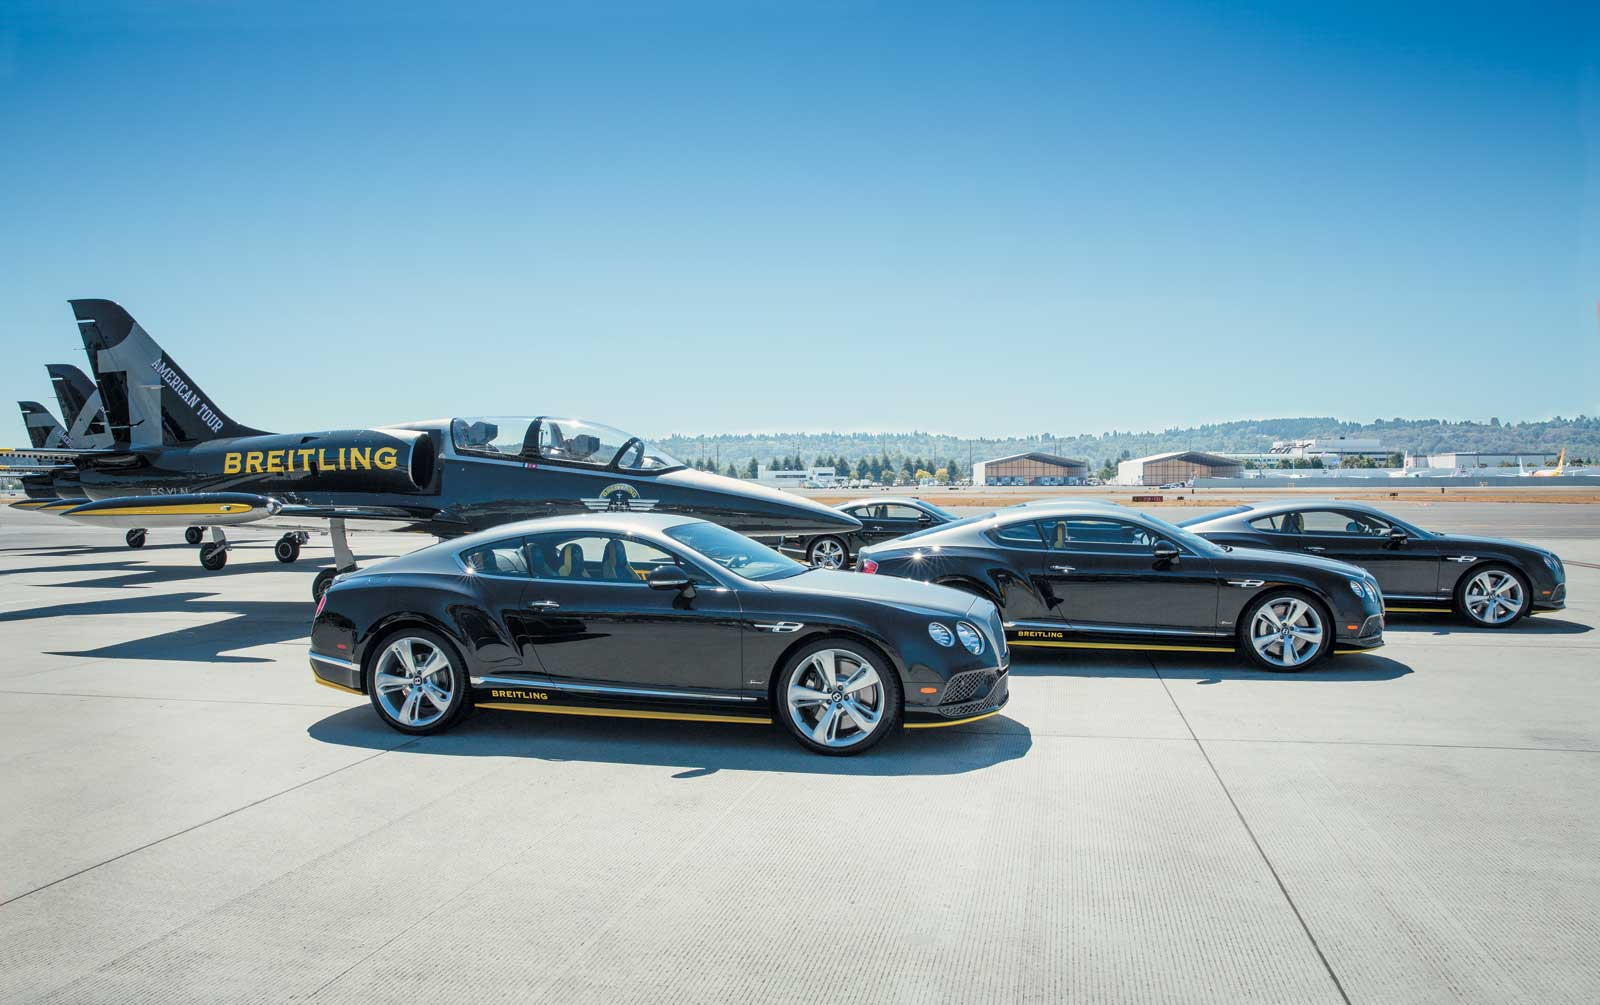 Bentley and Breitling Jet Team Series